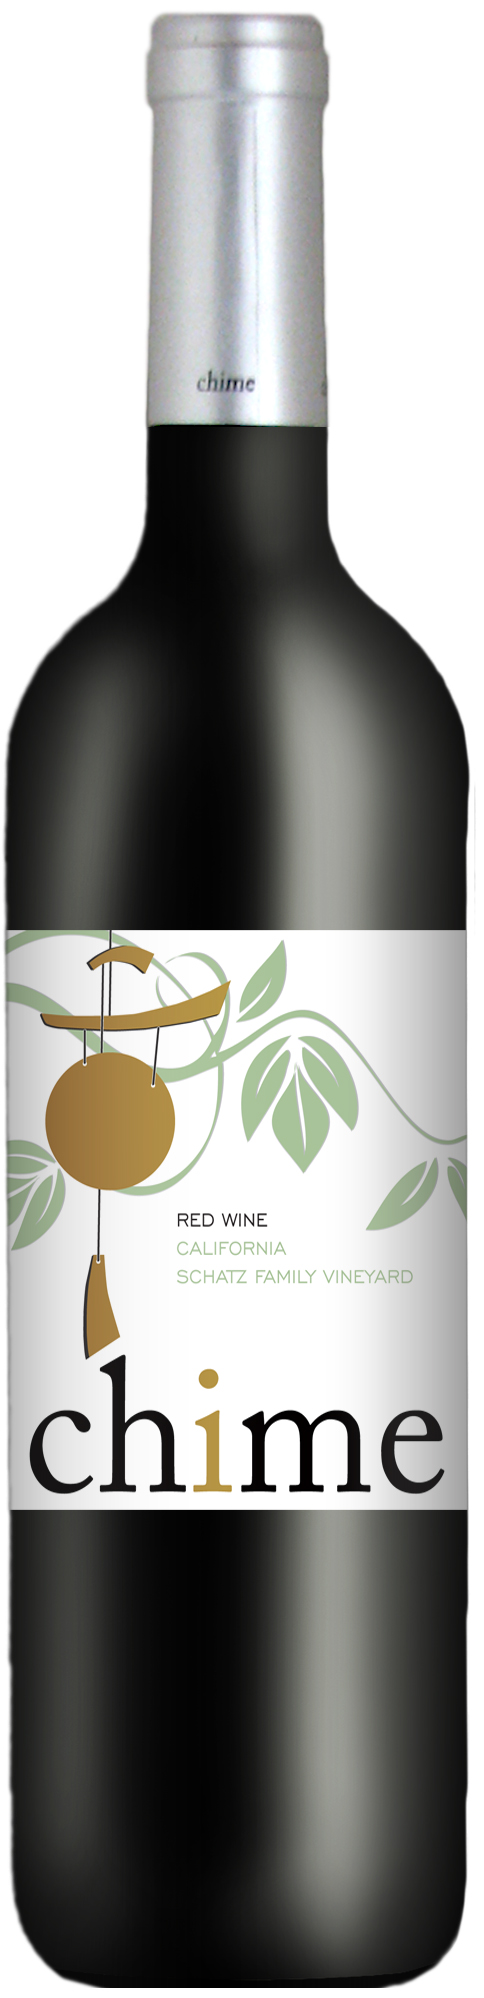 Chime Wines - California Red